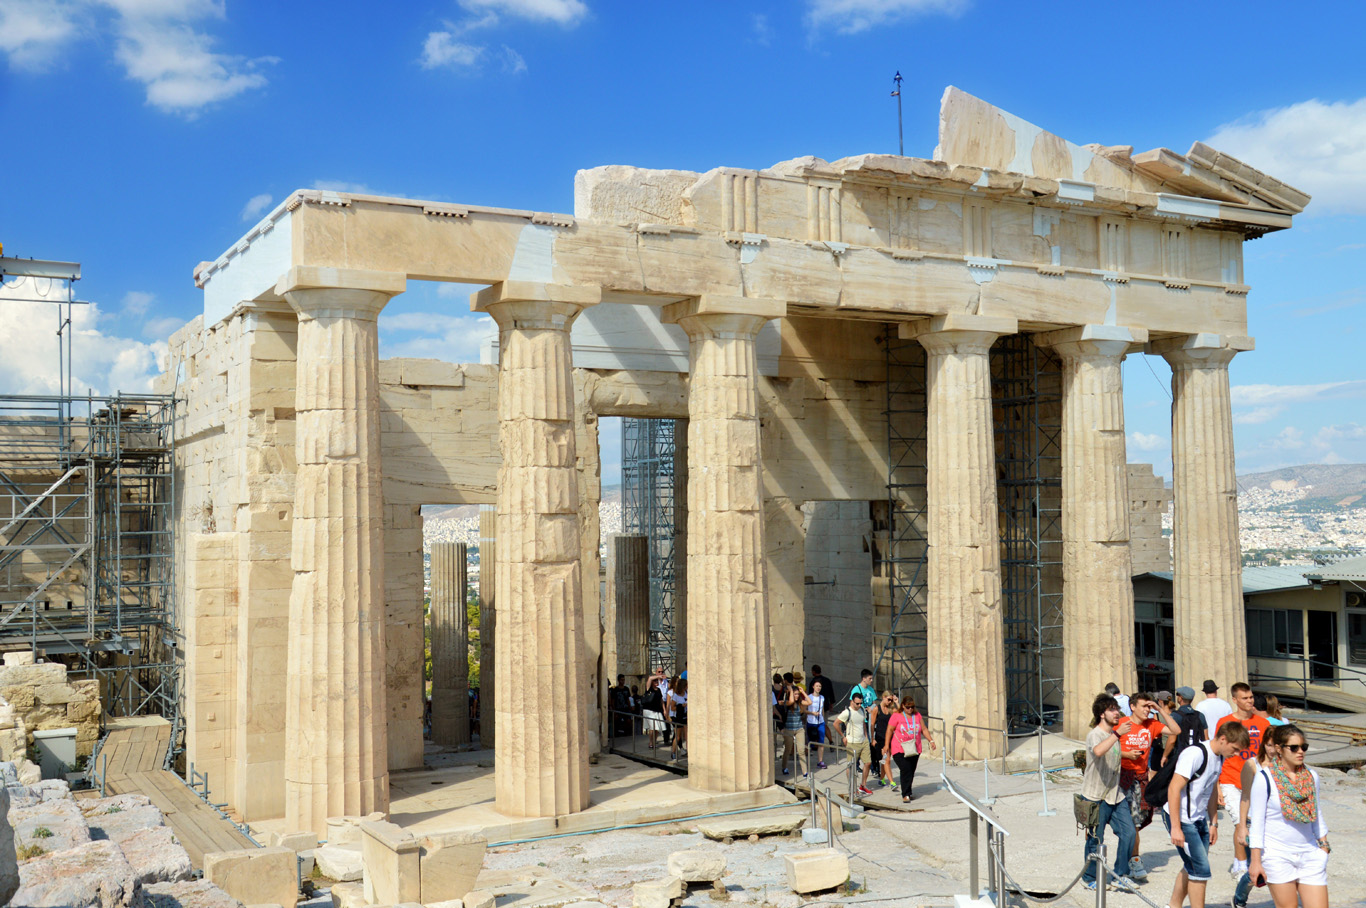 Propylaea - The Main Gate